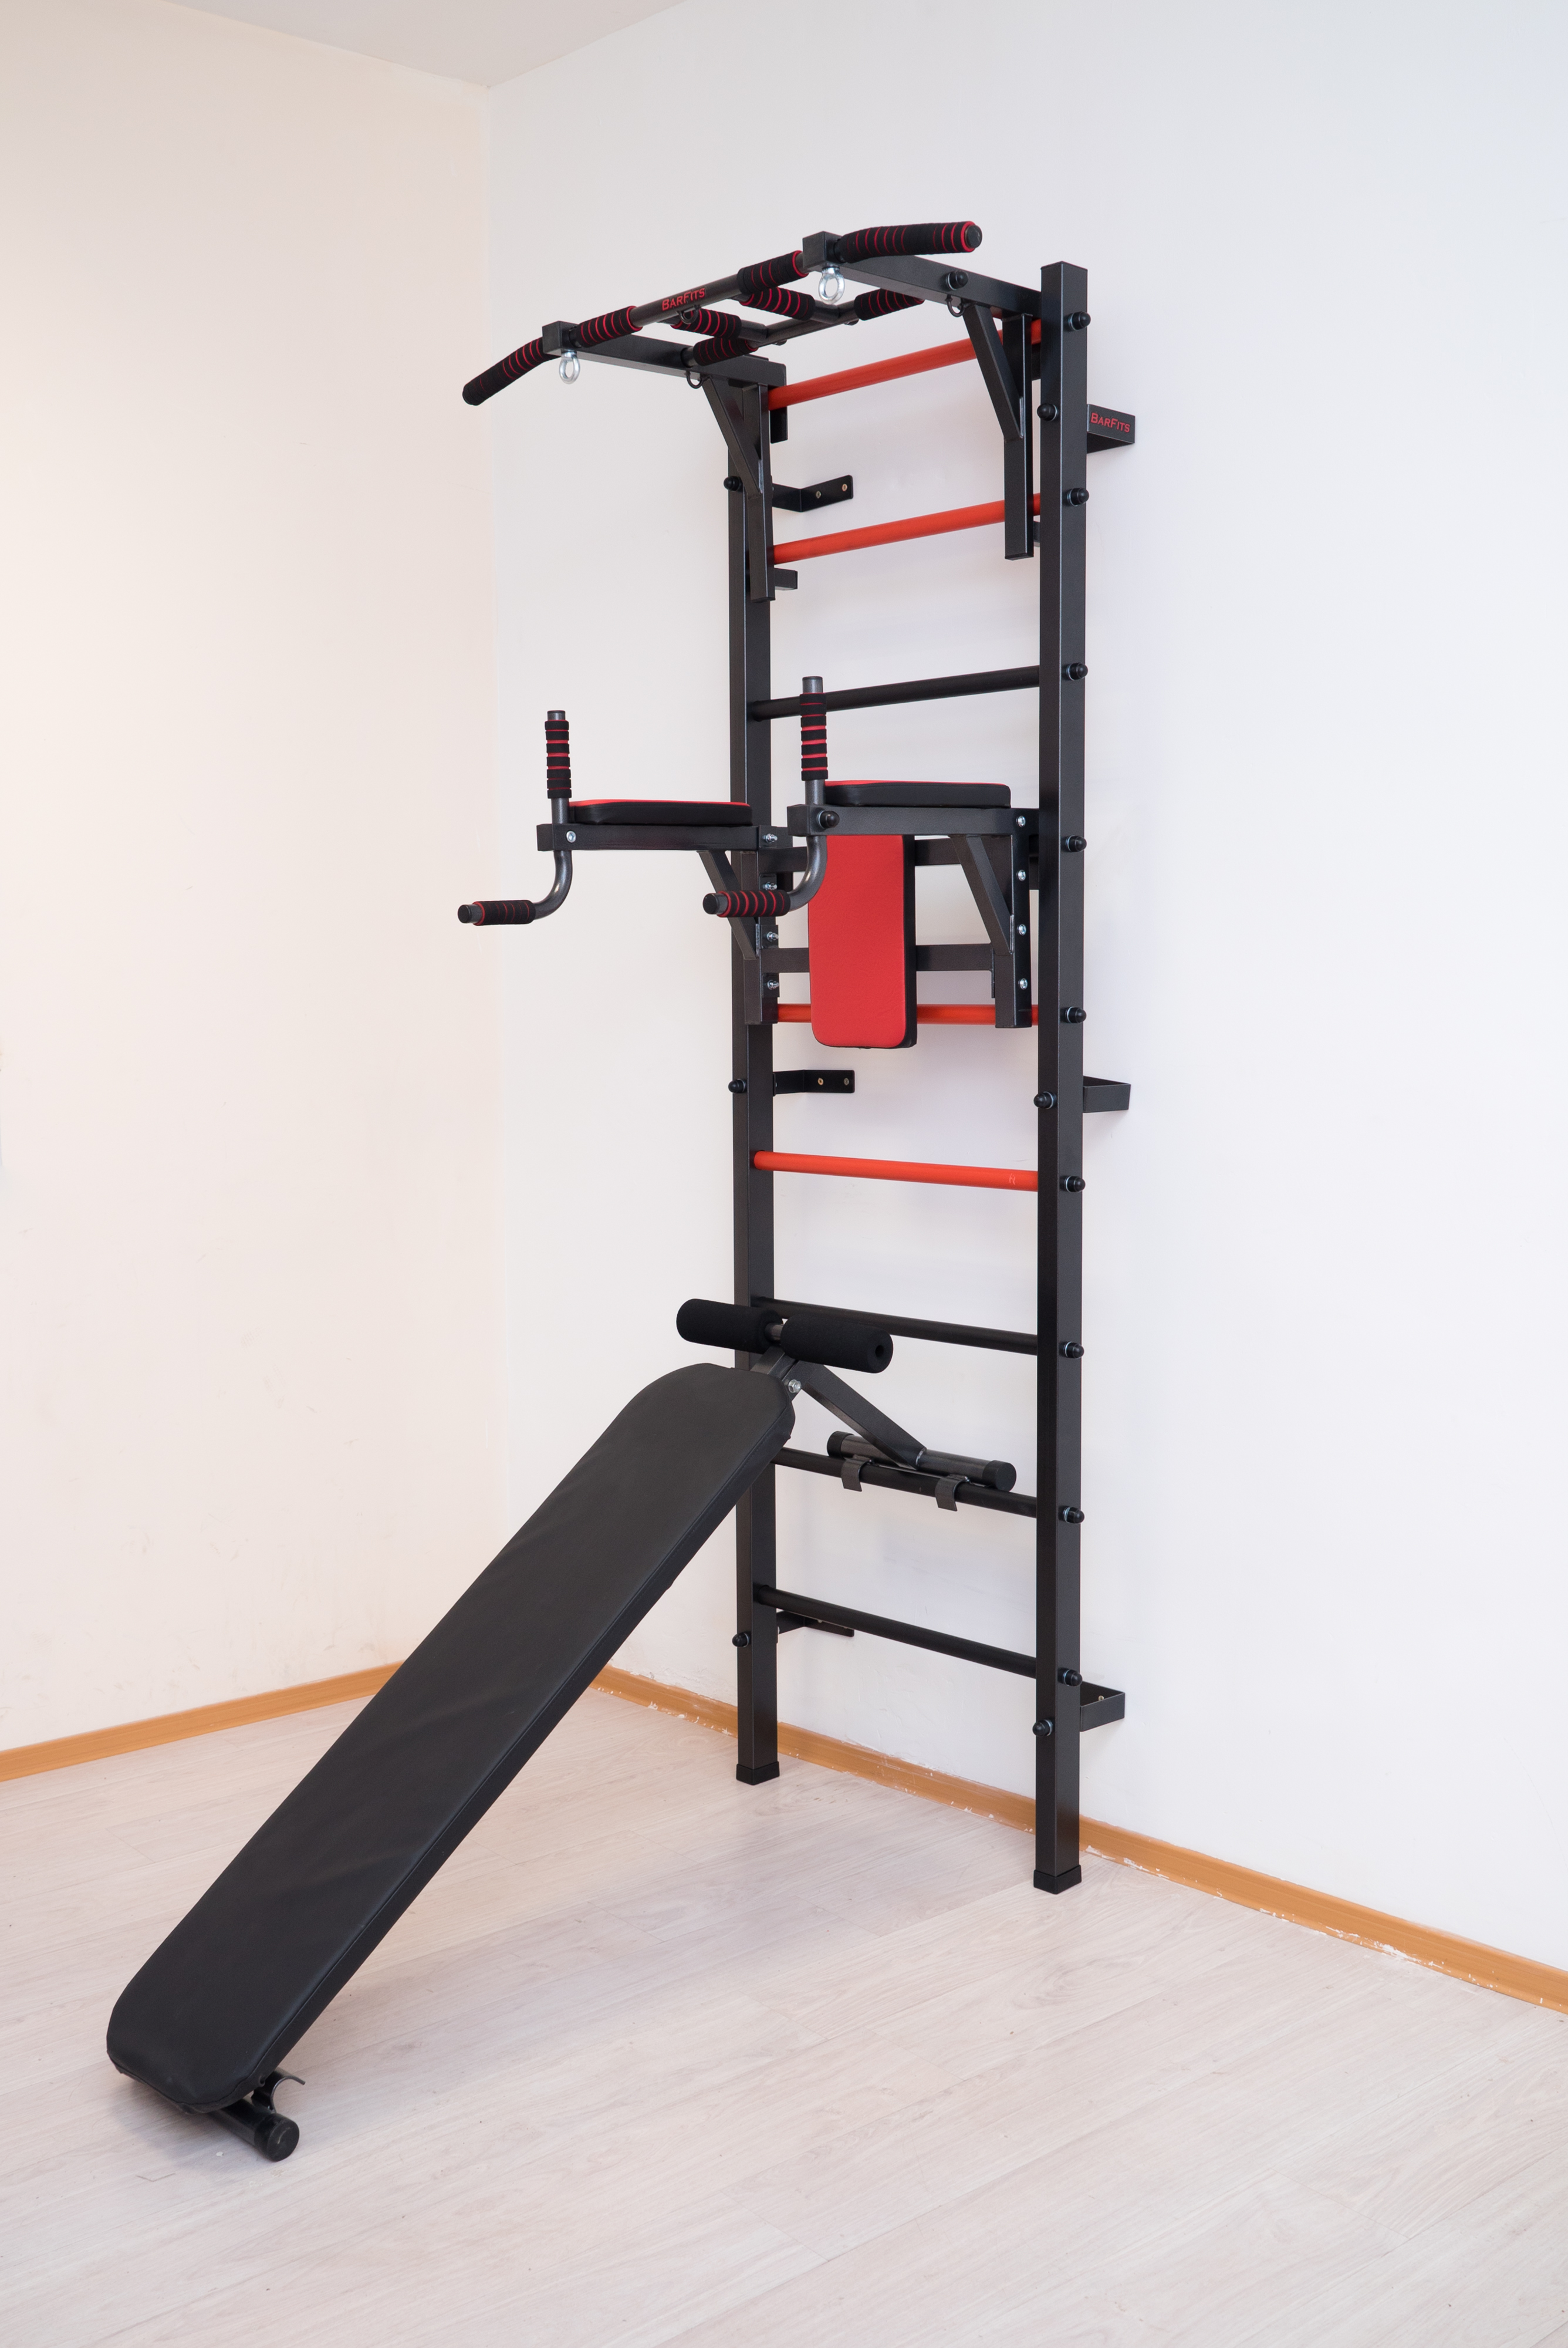 Swedish Wall With Turnstile, Bars, Bench For Press And Press